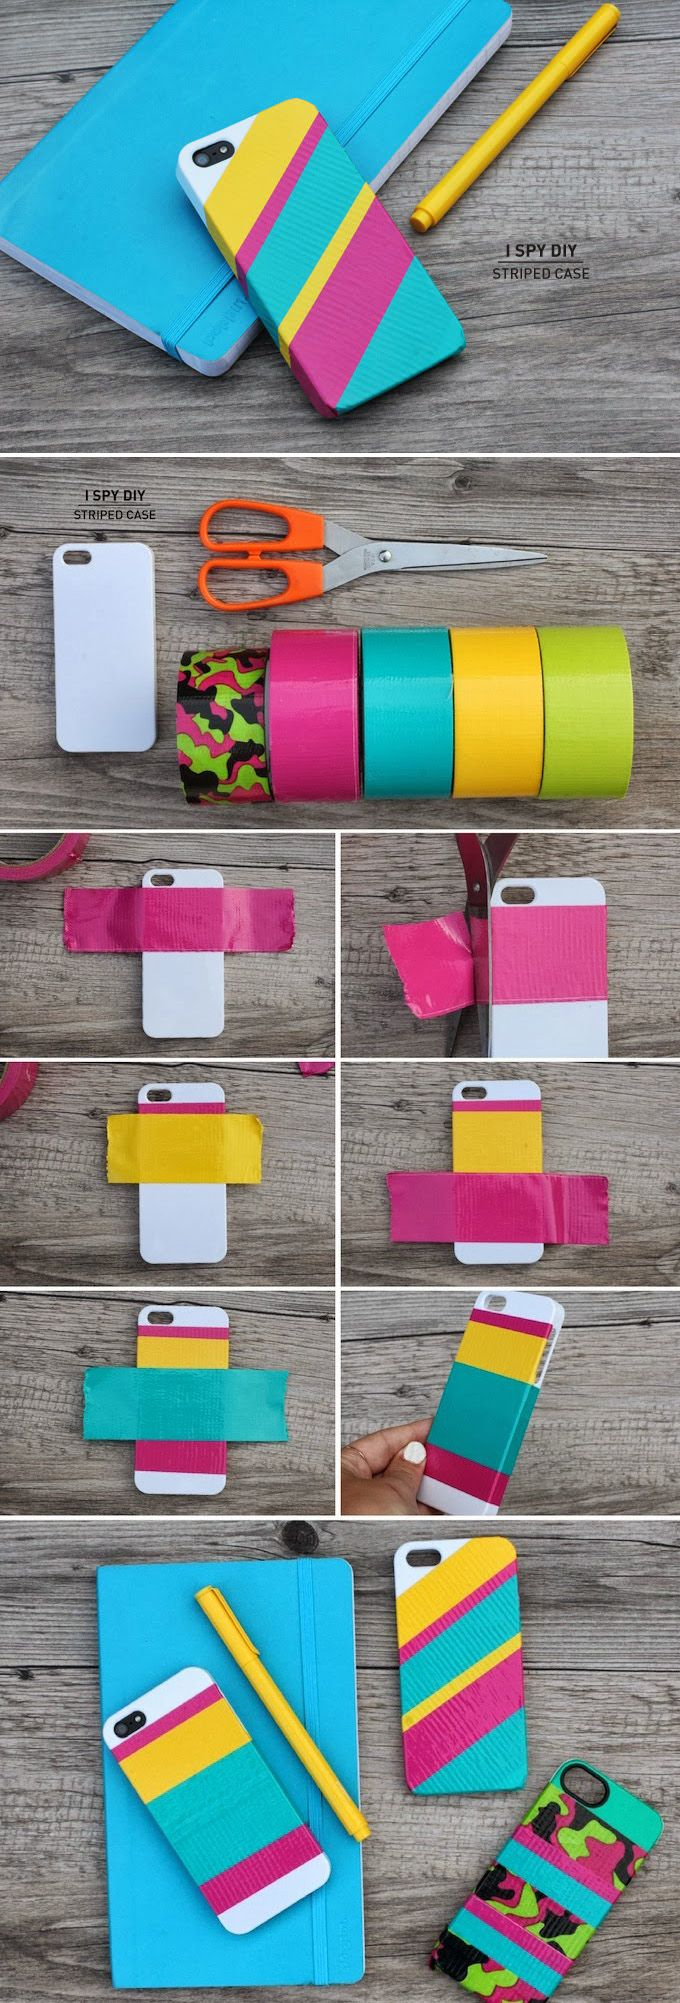 M s de 1000 ideas sobre fundas para tel fono en pinterest - Decorar funda movil ...